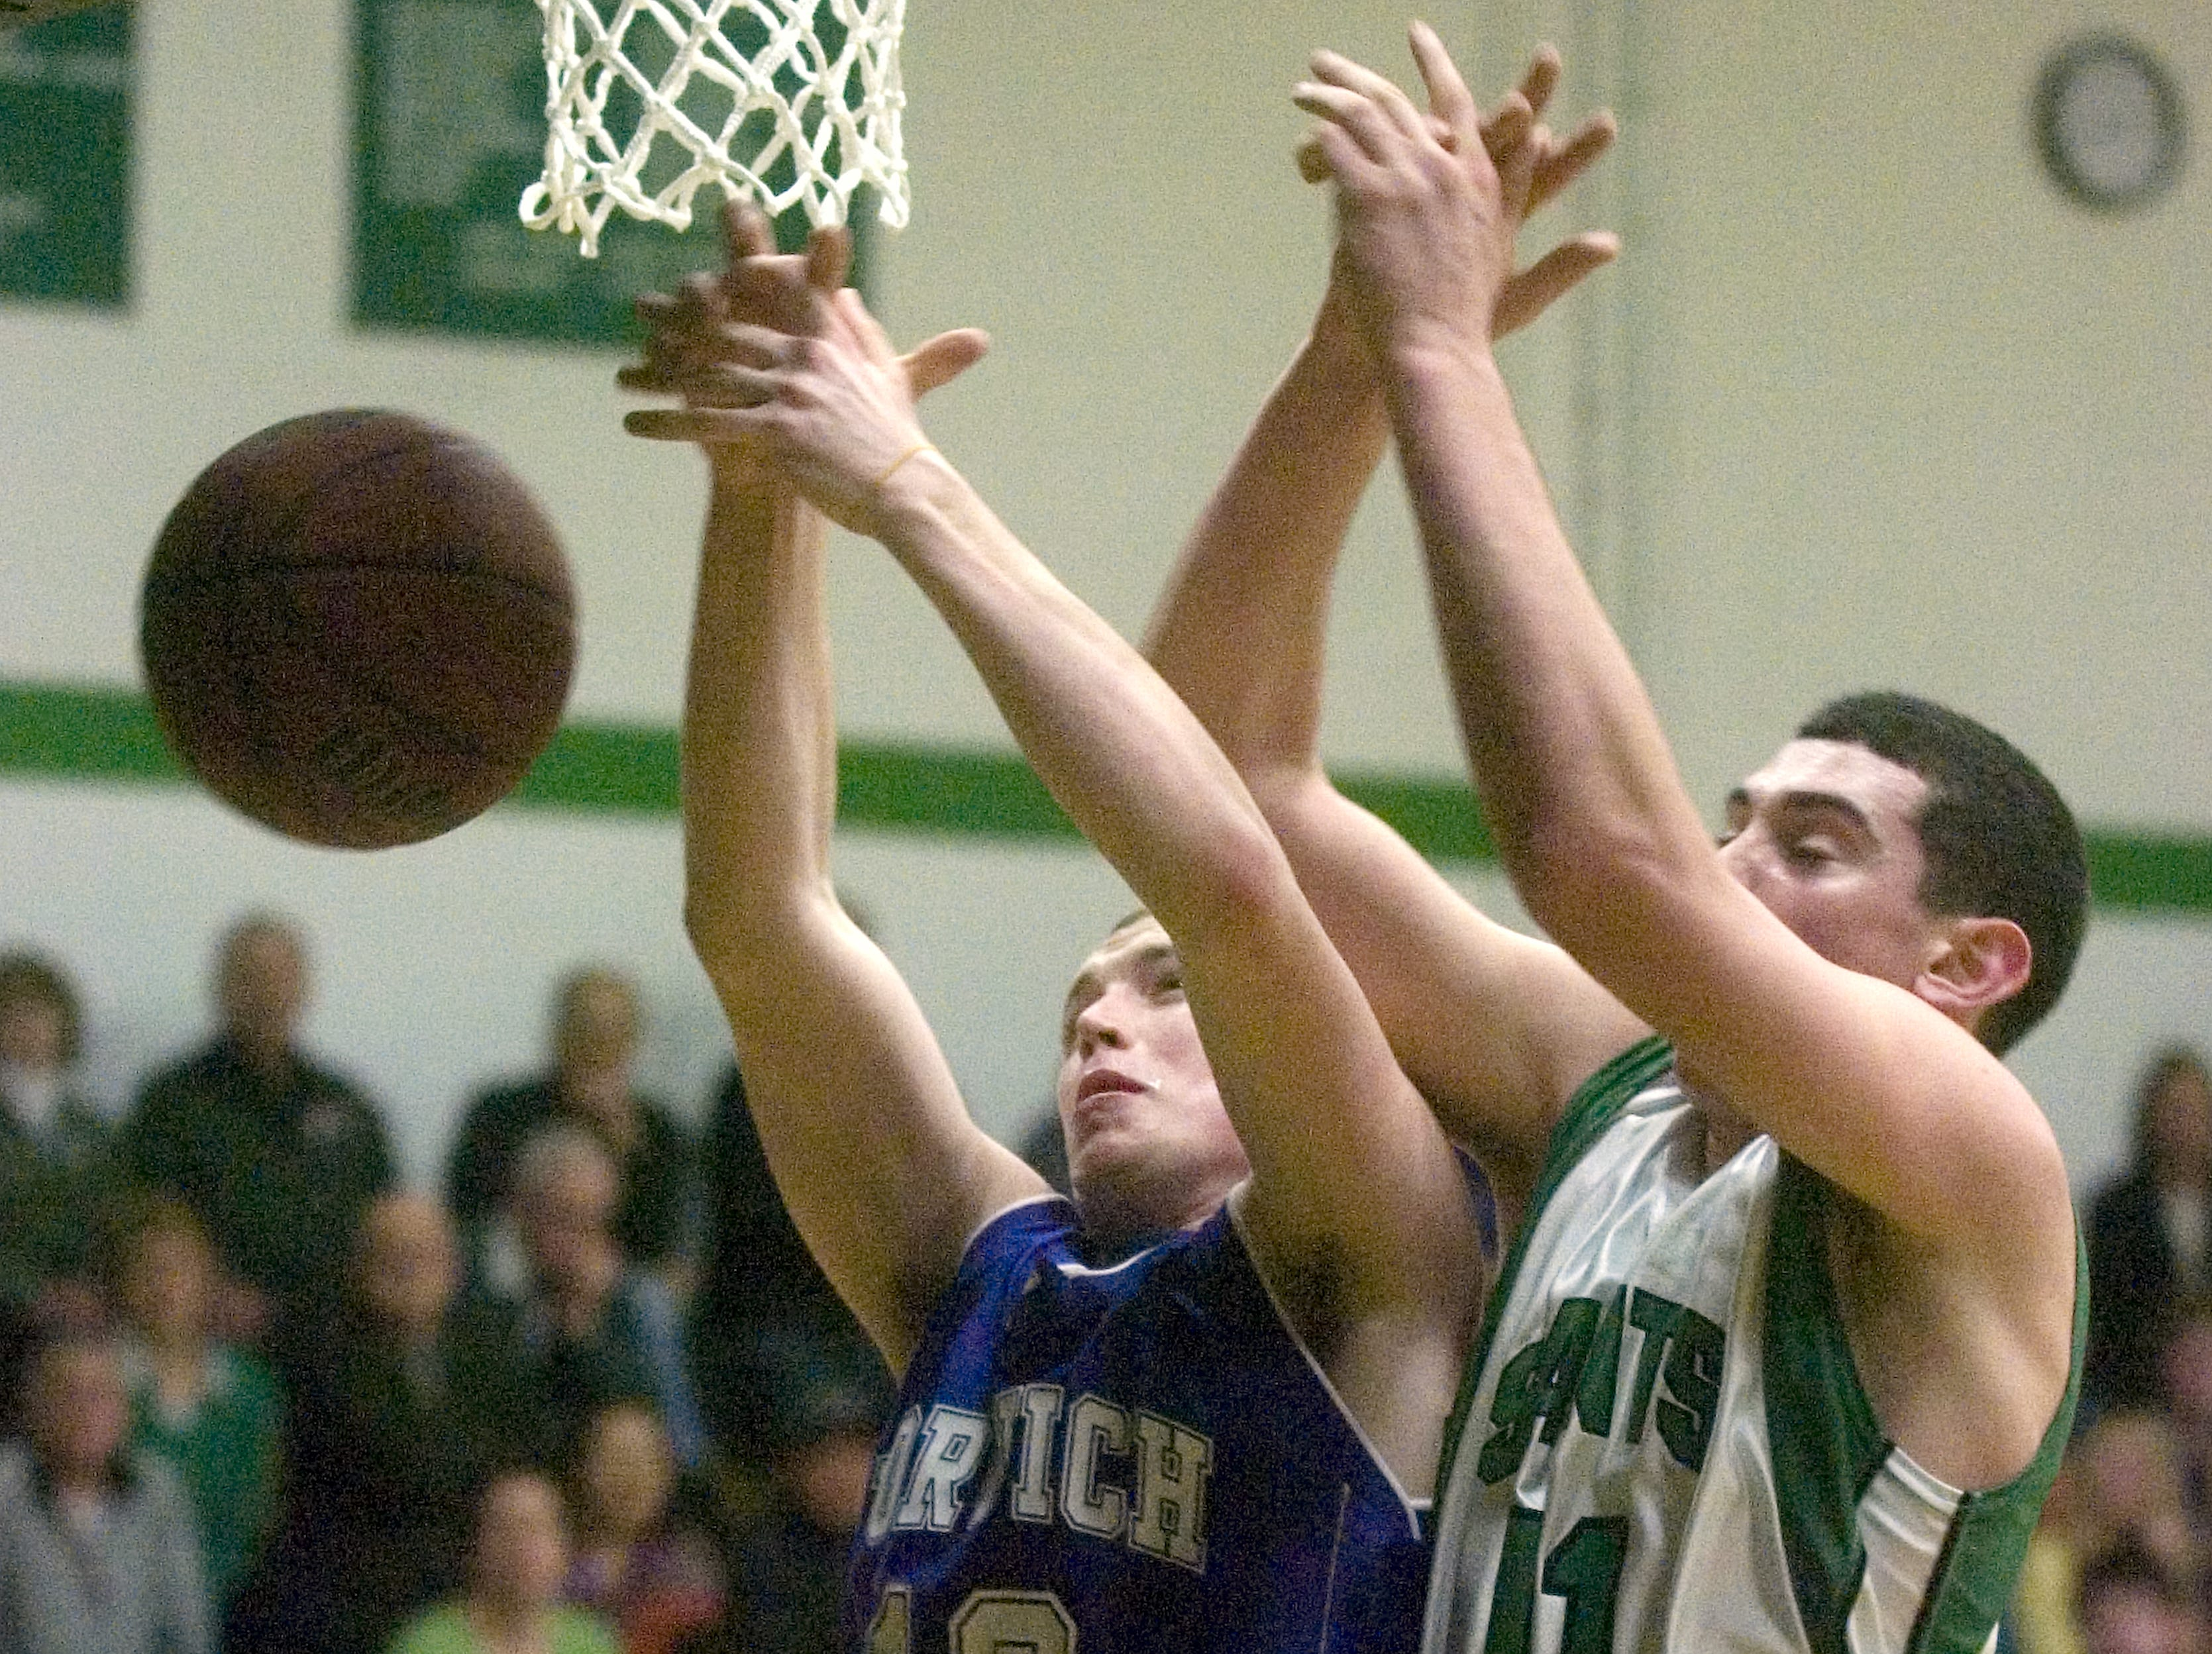 2009: Norwich's Corey Dietrich, left, and Seton Catholic Central's Tom Torto miss the ball on the rebound in the second quarter of Wednesday's game at Seton.